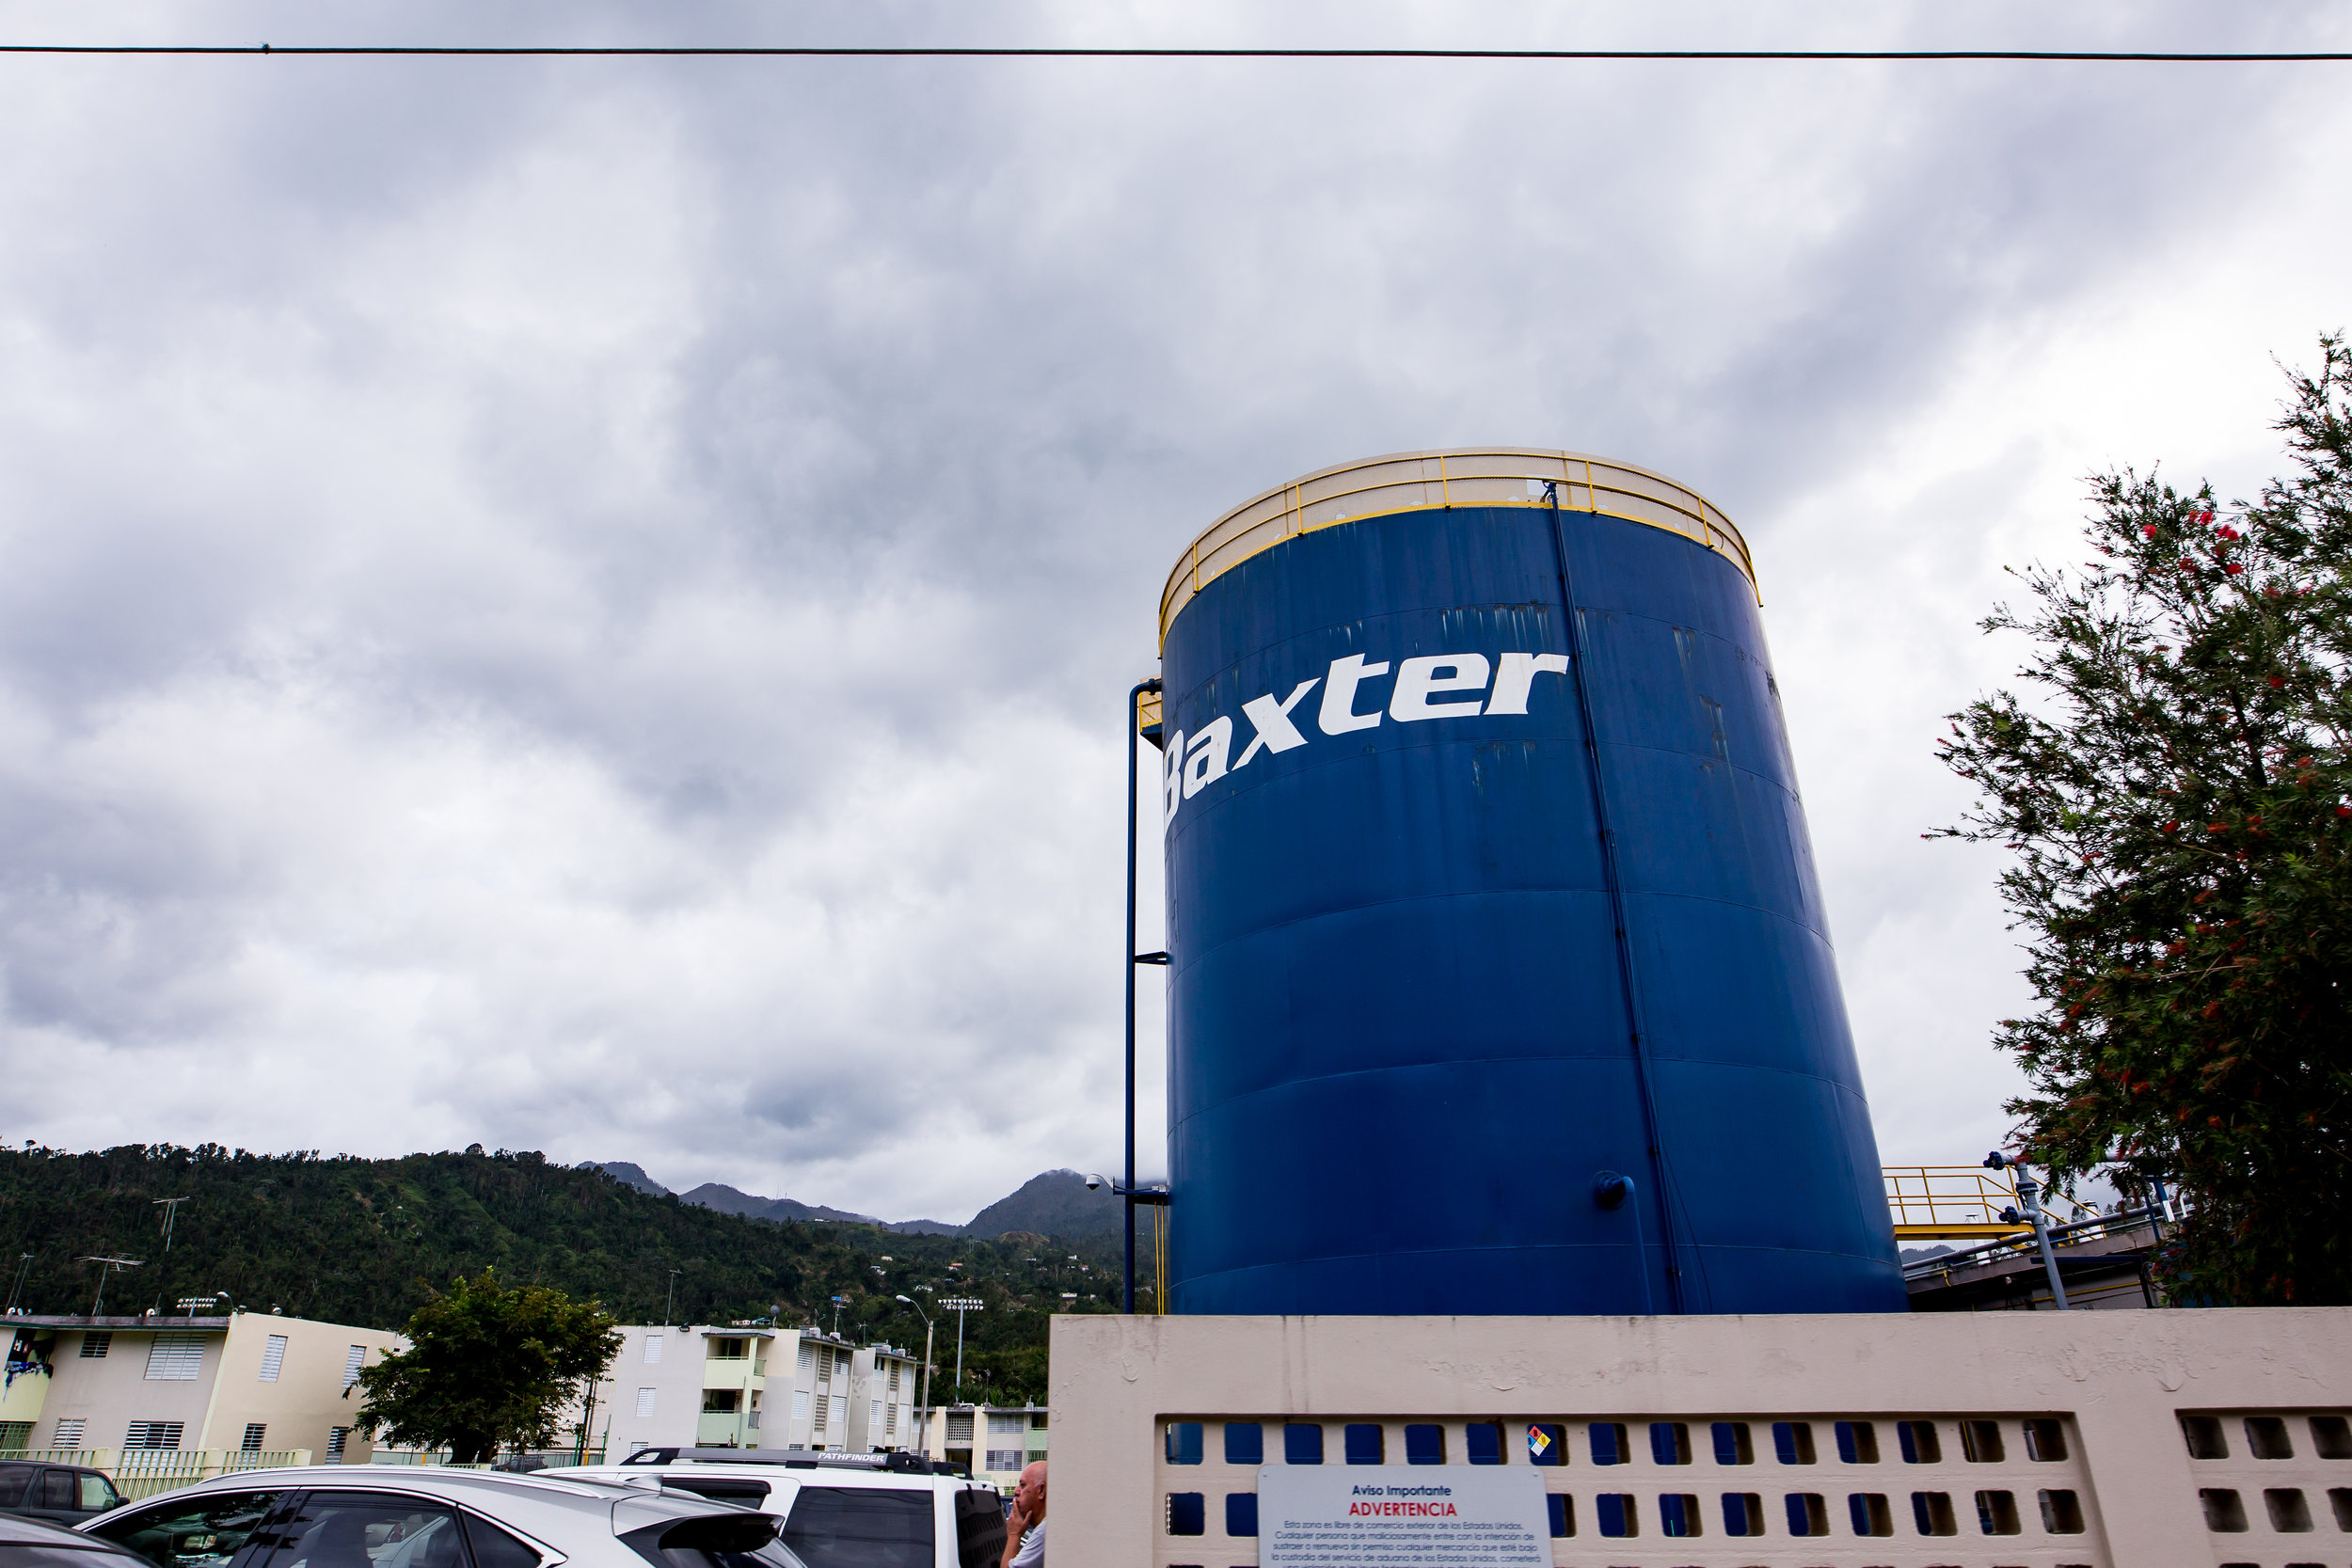 Baxter's water